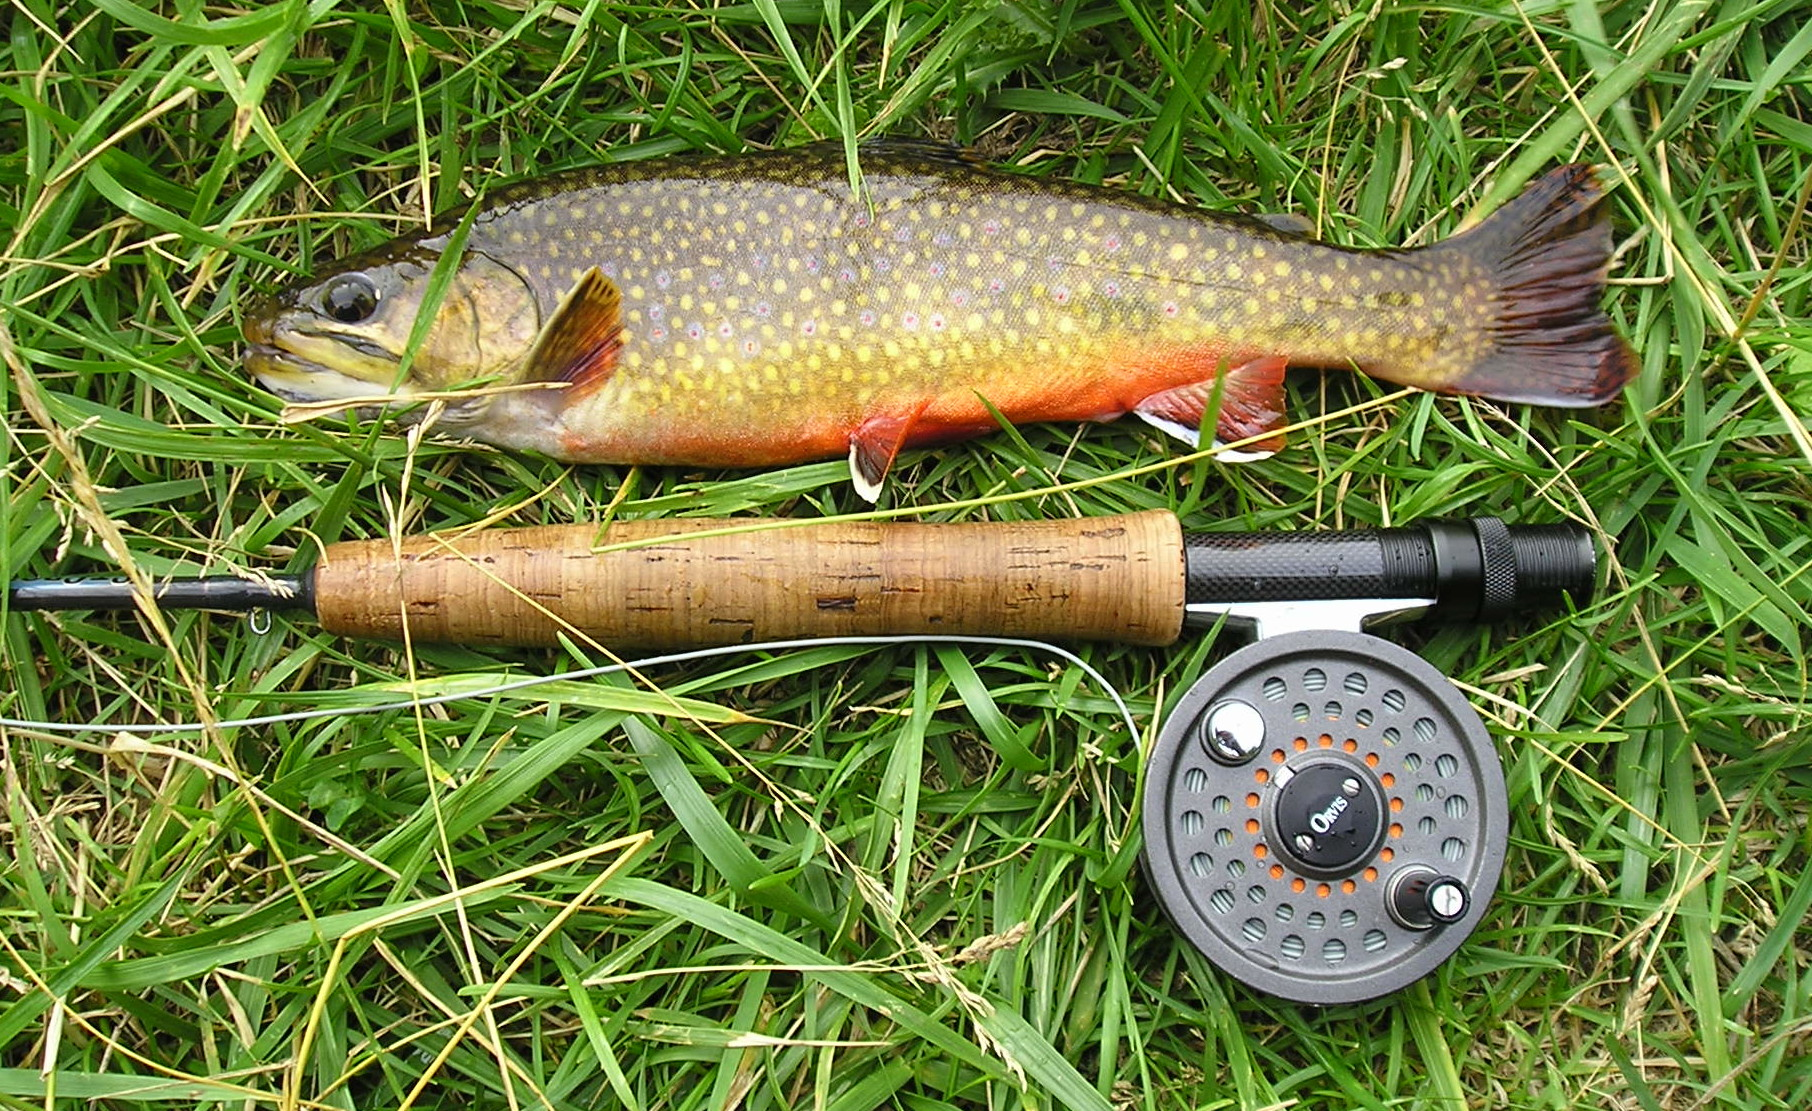 Big things on big spring casting across for Spring creek pa fishing report